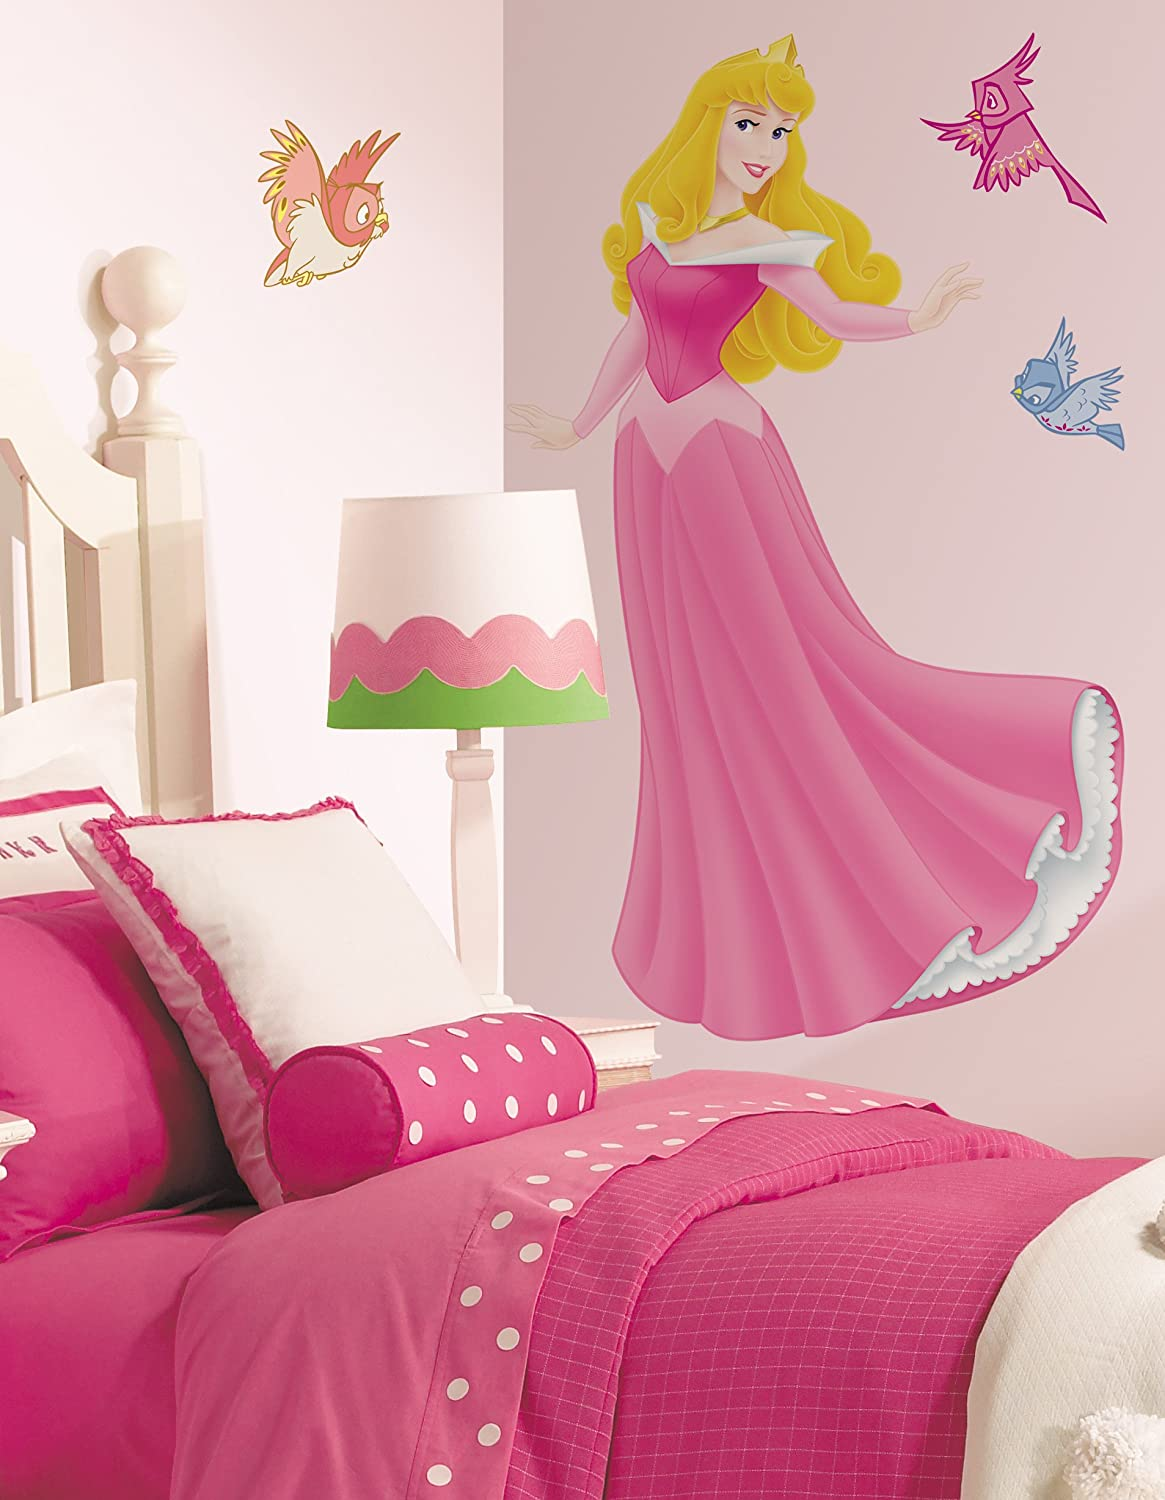 RoomMates Disney Princess Sleeping Beauty Giant Wall Sticker: Amazon.co.uk:  Baby